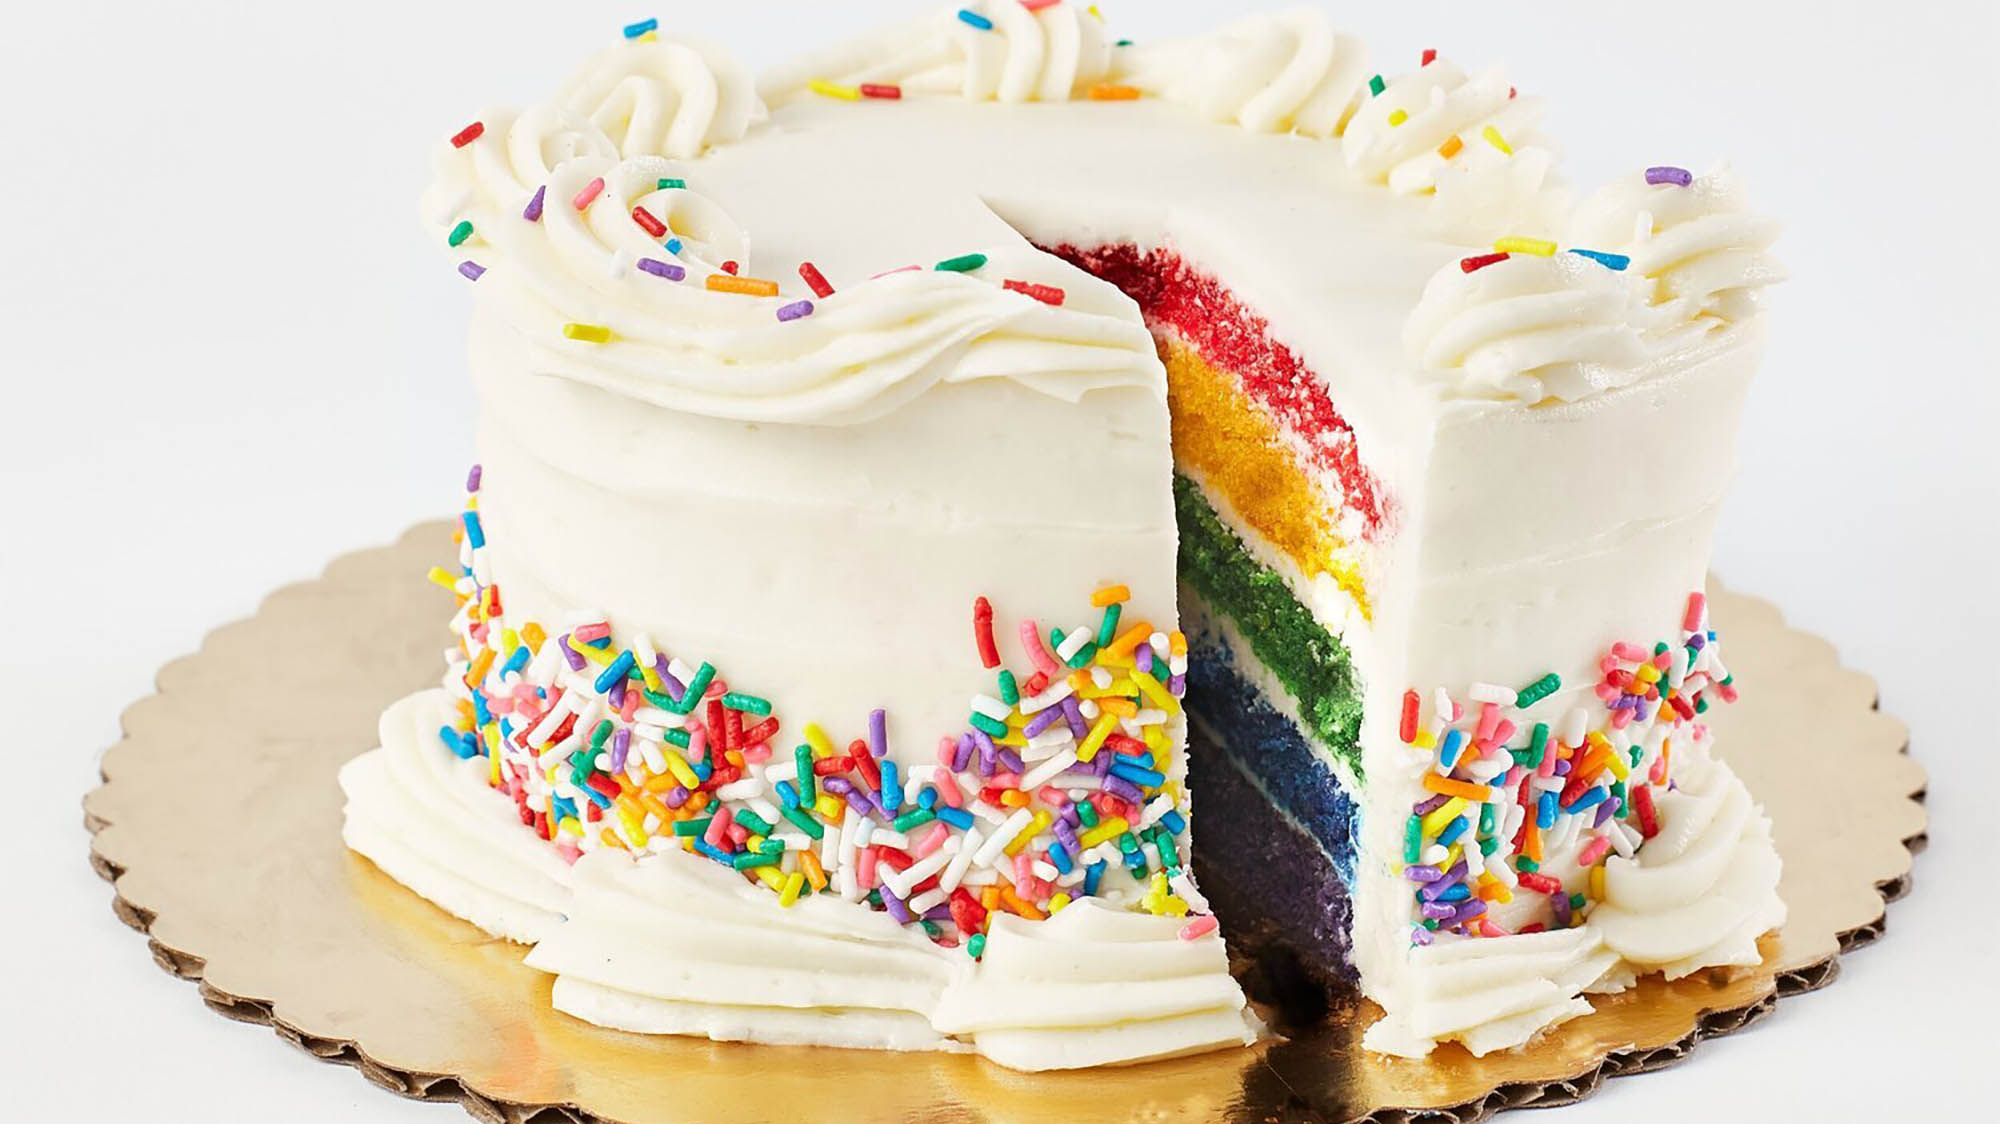 White cake with rainbow sprinkles with one missing piece revealing rainbow layers inside